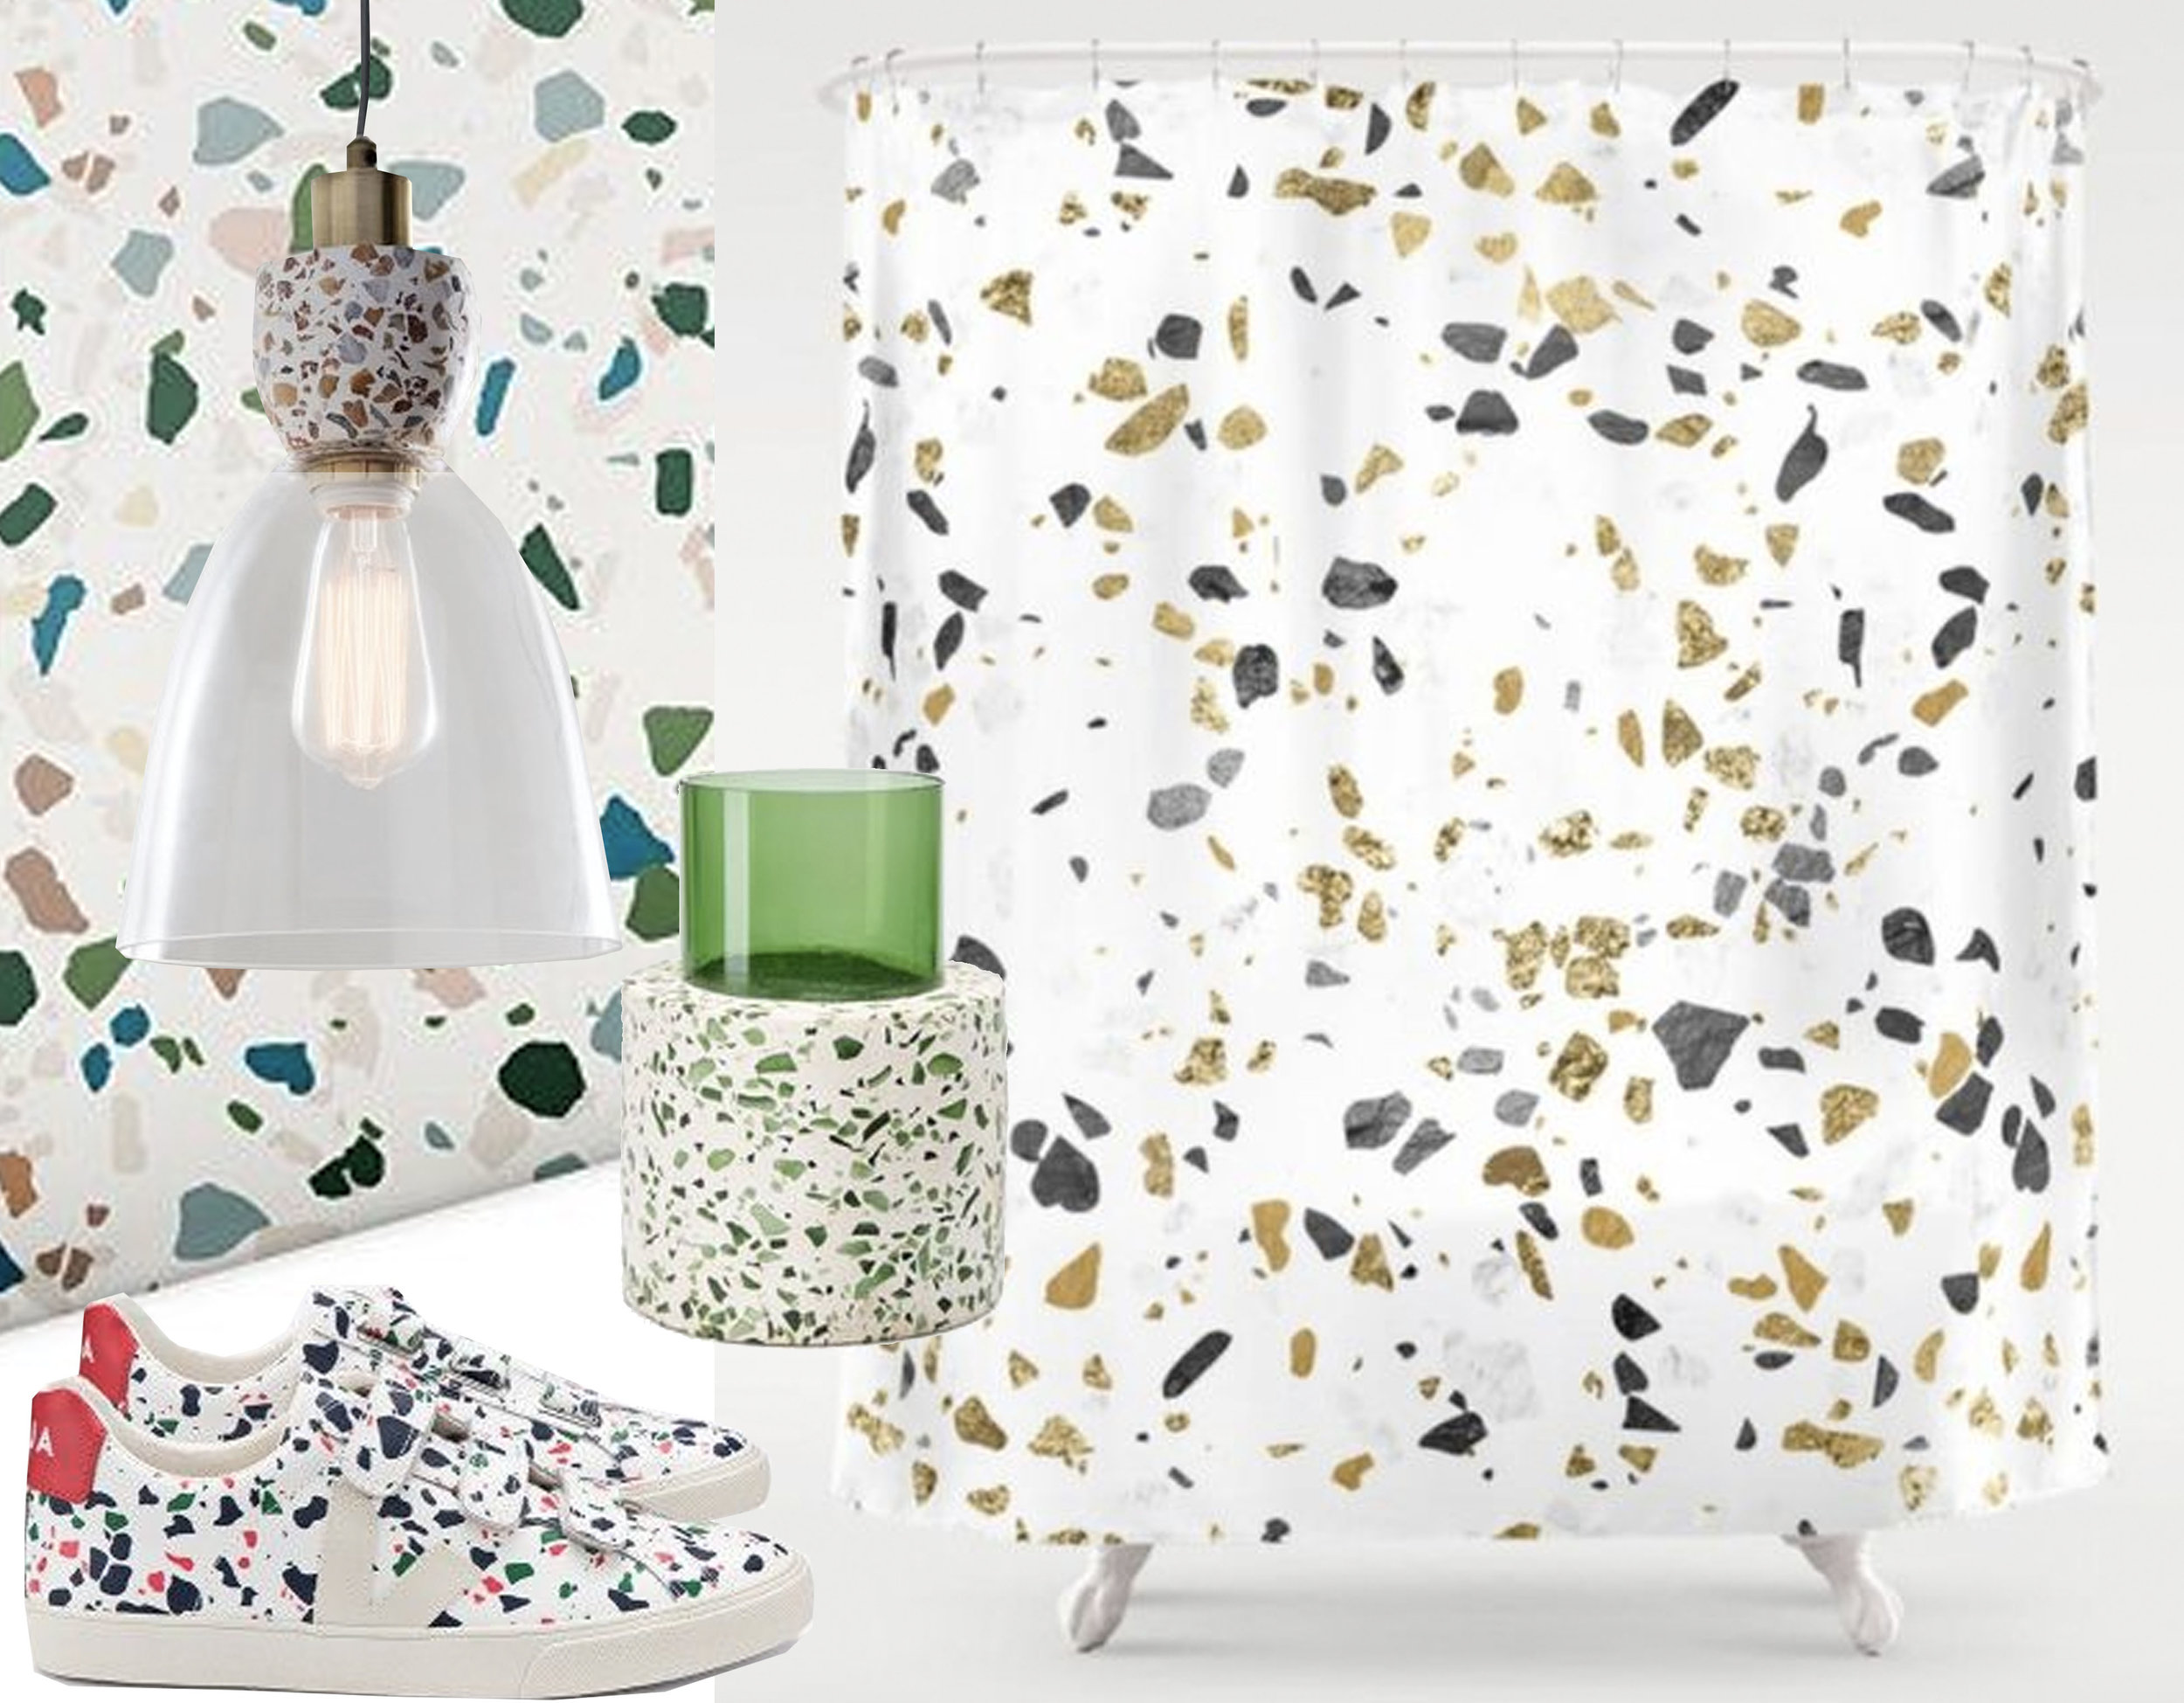 wallpaper via  Macy's  - terrazzo pendant lamp via  Apartment Therapy  - glass and terrazzo from Super Local via  Dezeen  -  Veja  trainers - shower curtain  Society 6